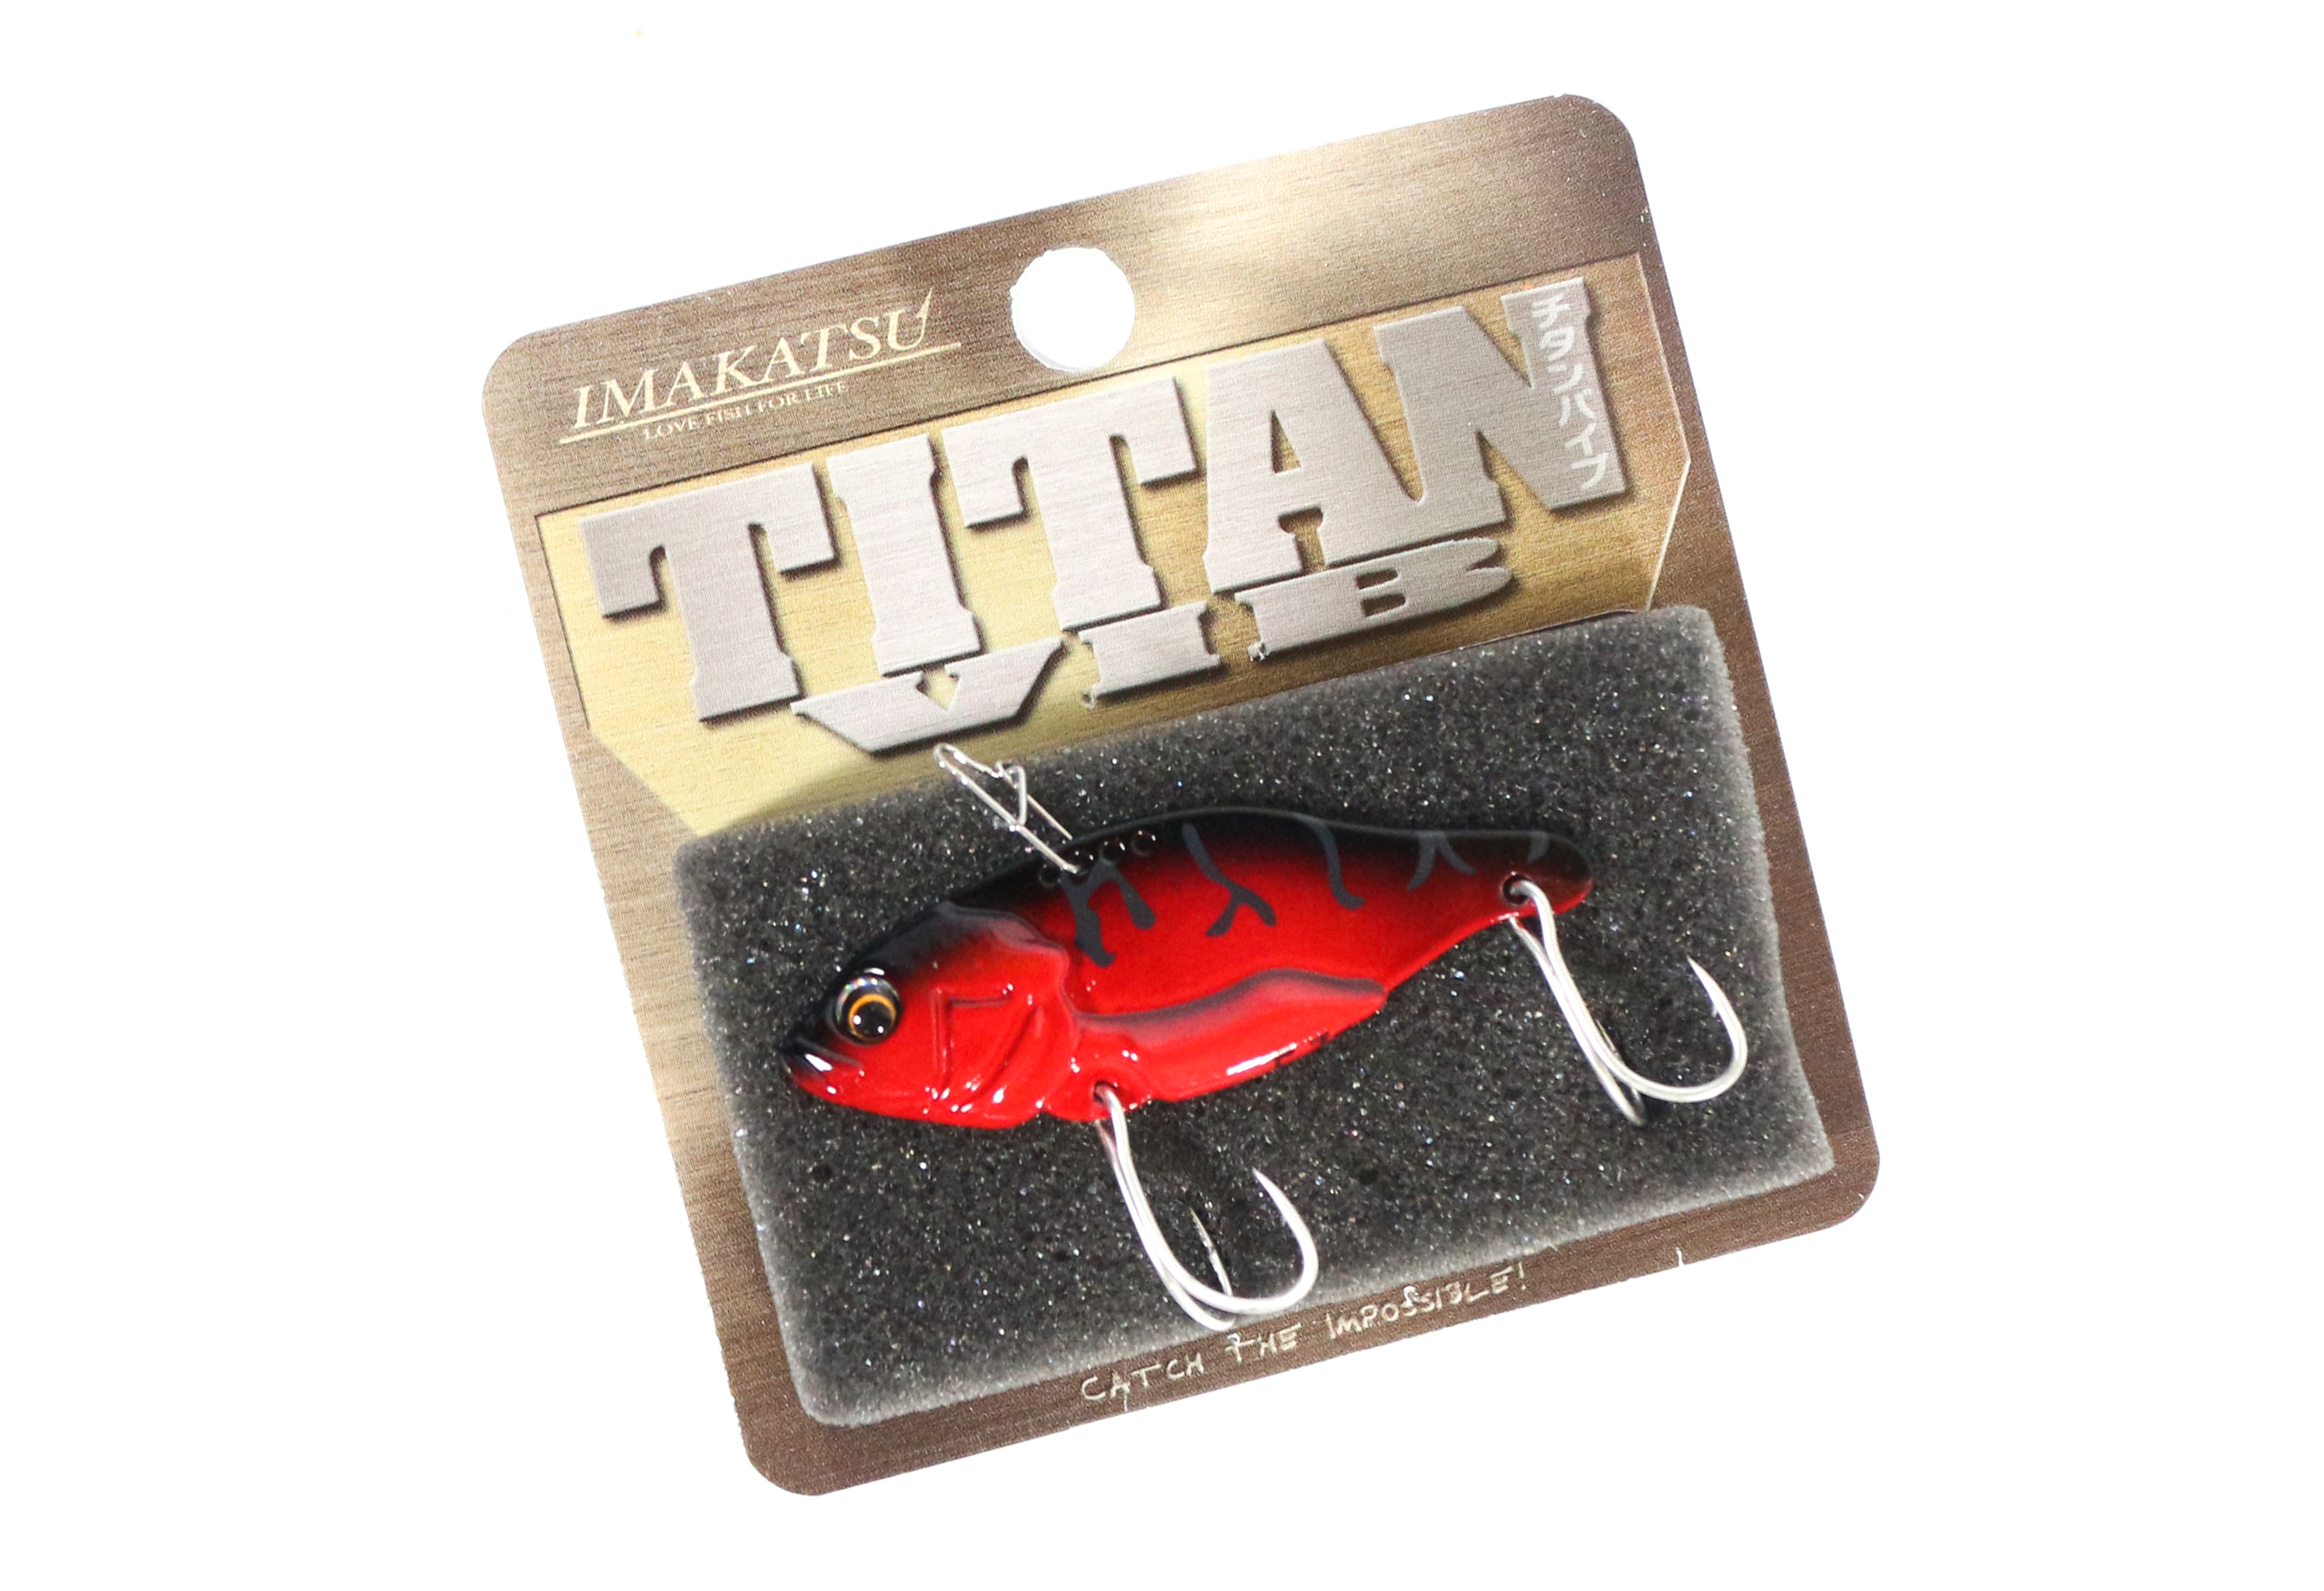 Sale Imakatsu Titan Vib Metal Vibration 7 grams Sinking Lure MV-29 (5070)